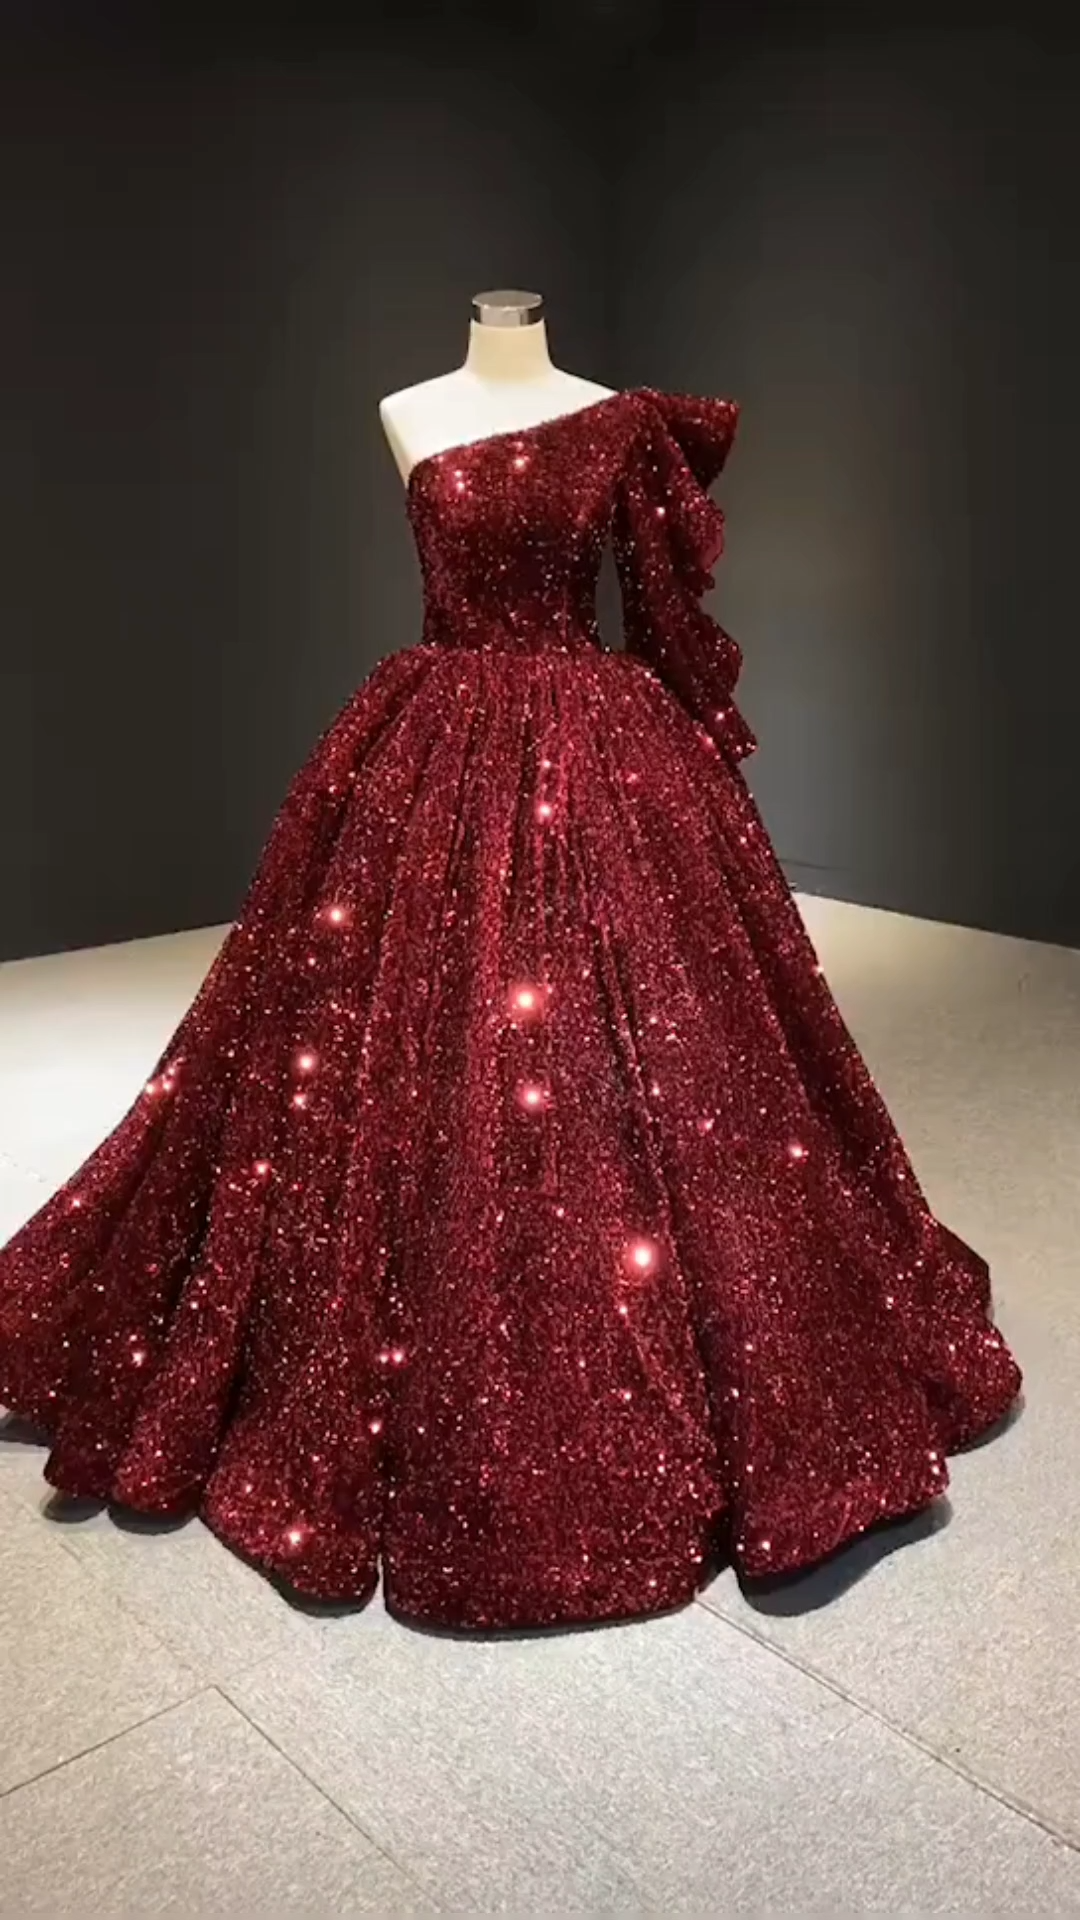 New Glitter White Sequin Ball Gown Prom Dresses One Shoulder Quince Dress Fd2396 In 2020 Ballkleid Abschlussball Schone Kleider Abschlussball Kleider